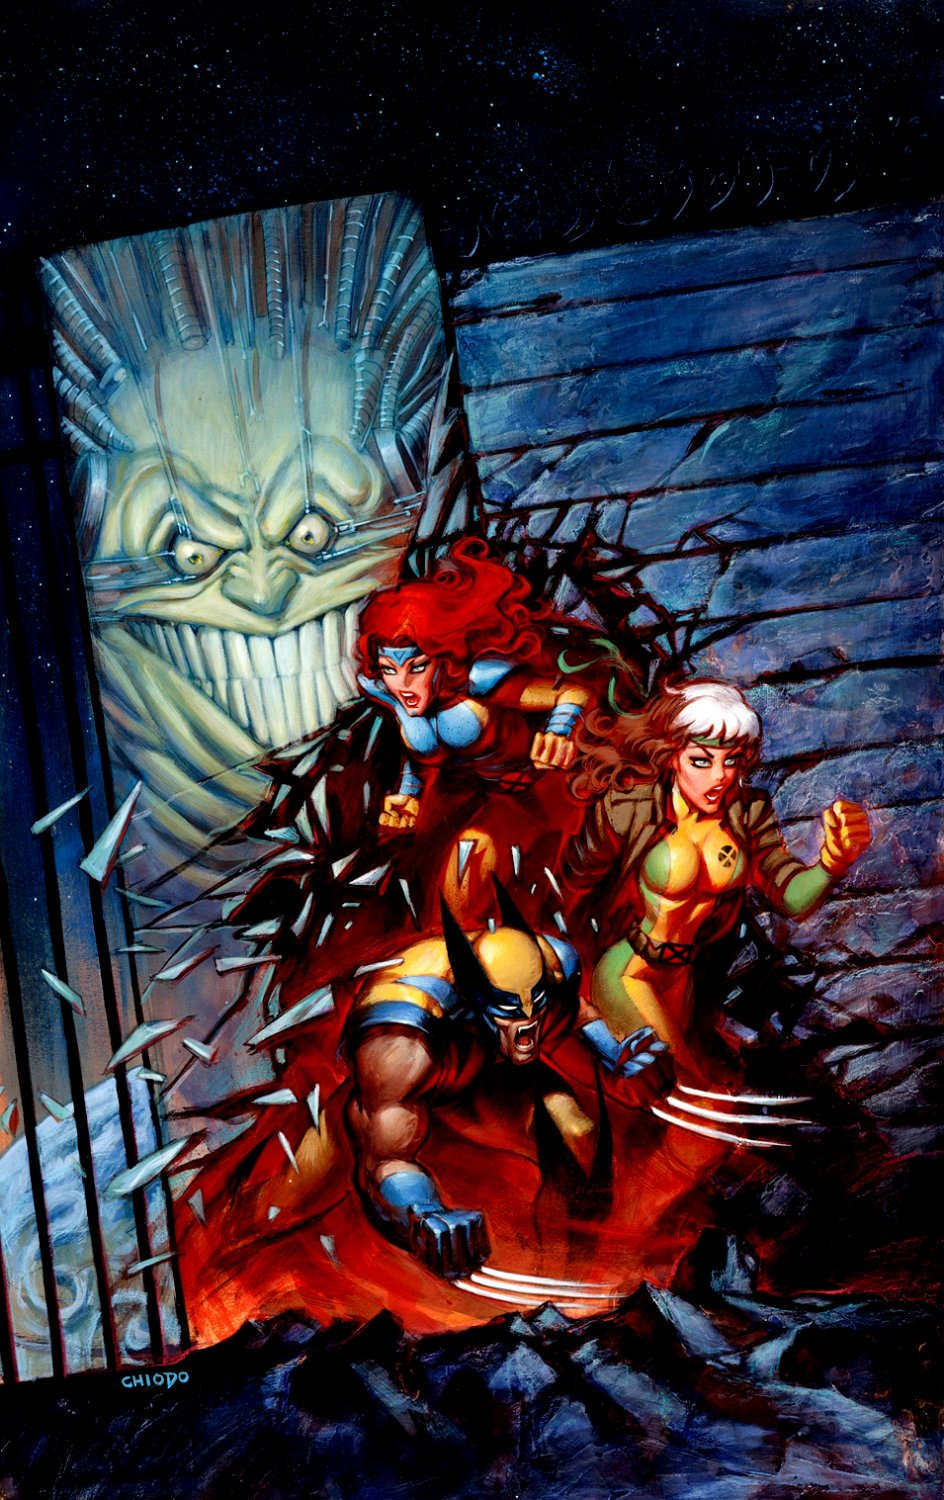 X-Men: Prisoner X Trade Paperback Cover Painting (1998)